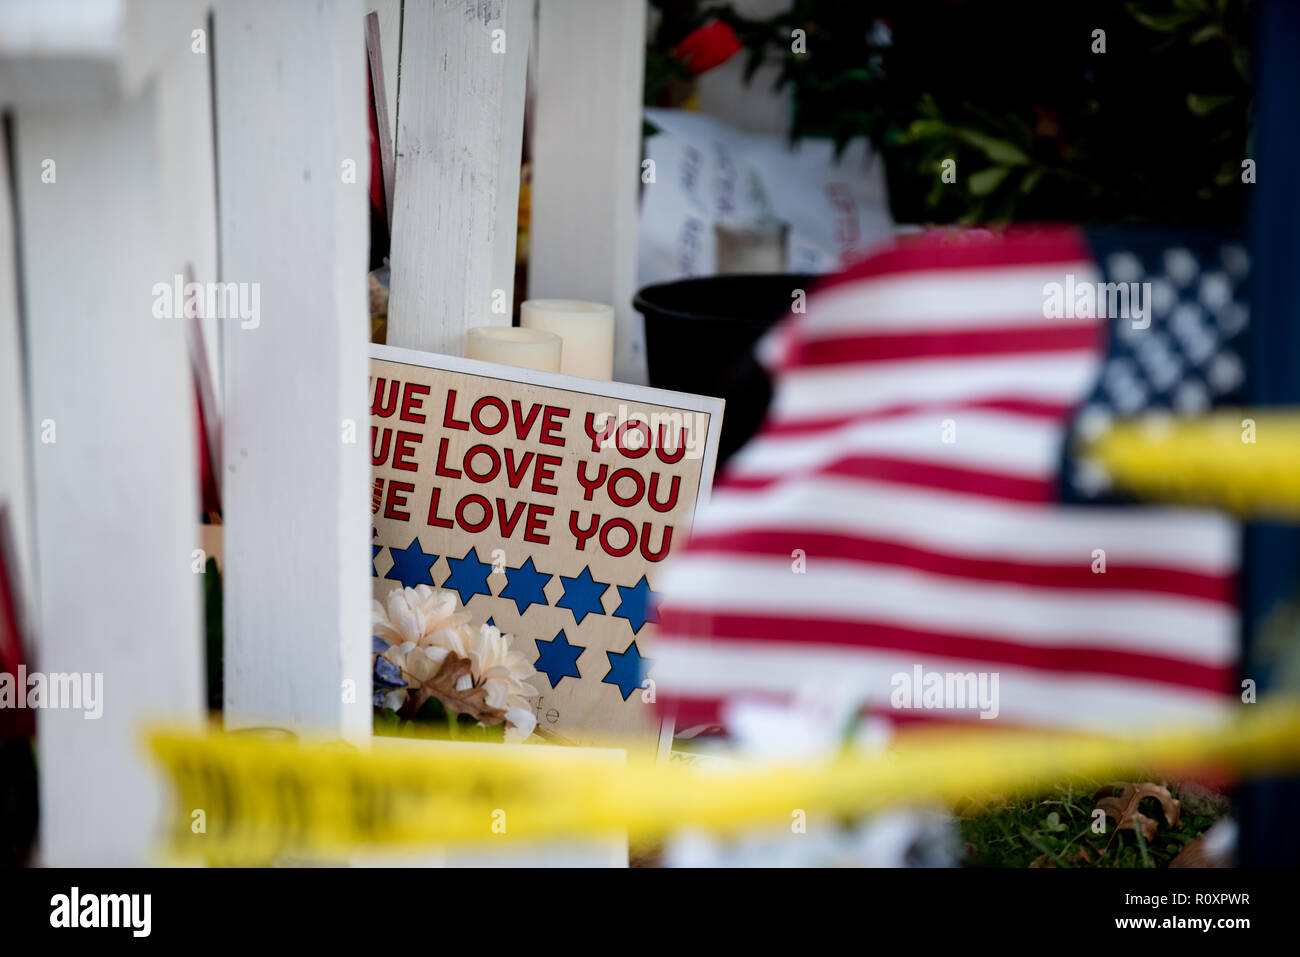 'We love you' placard and an American flag are seen during the midterm elections in Pittsburgh, PA in the aftermath of the Tree of Life shootings. - Stock Image